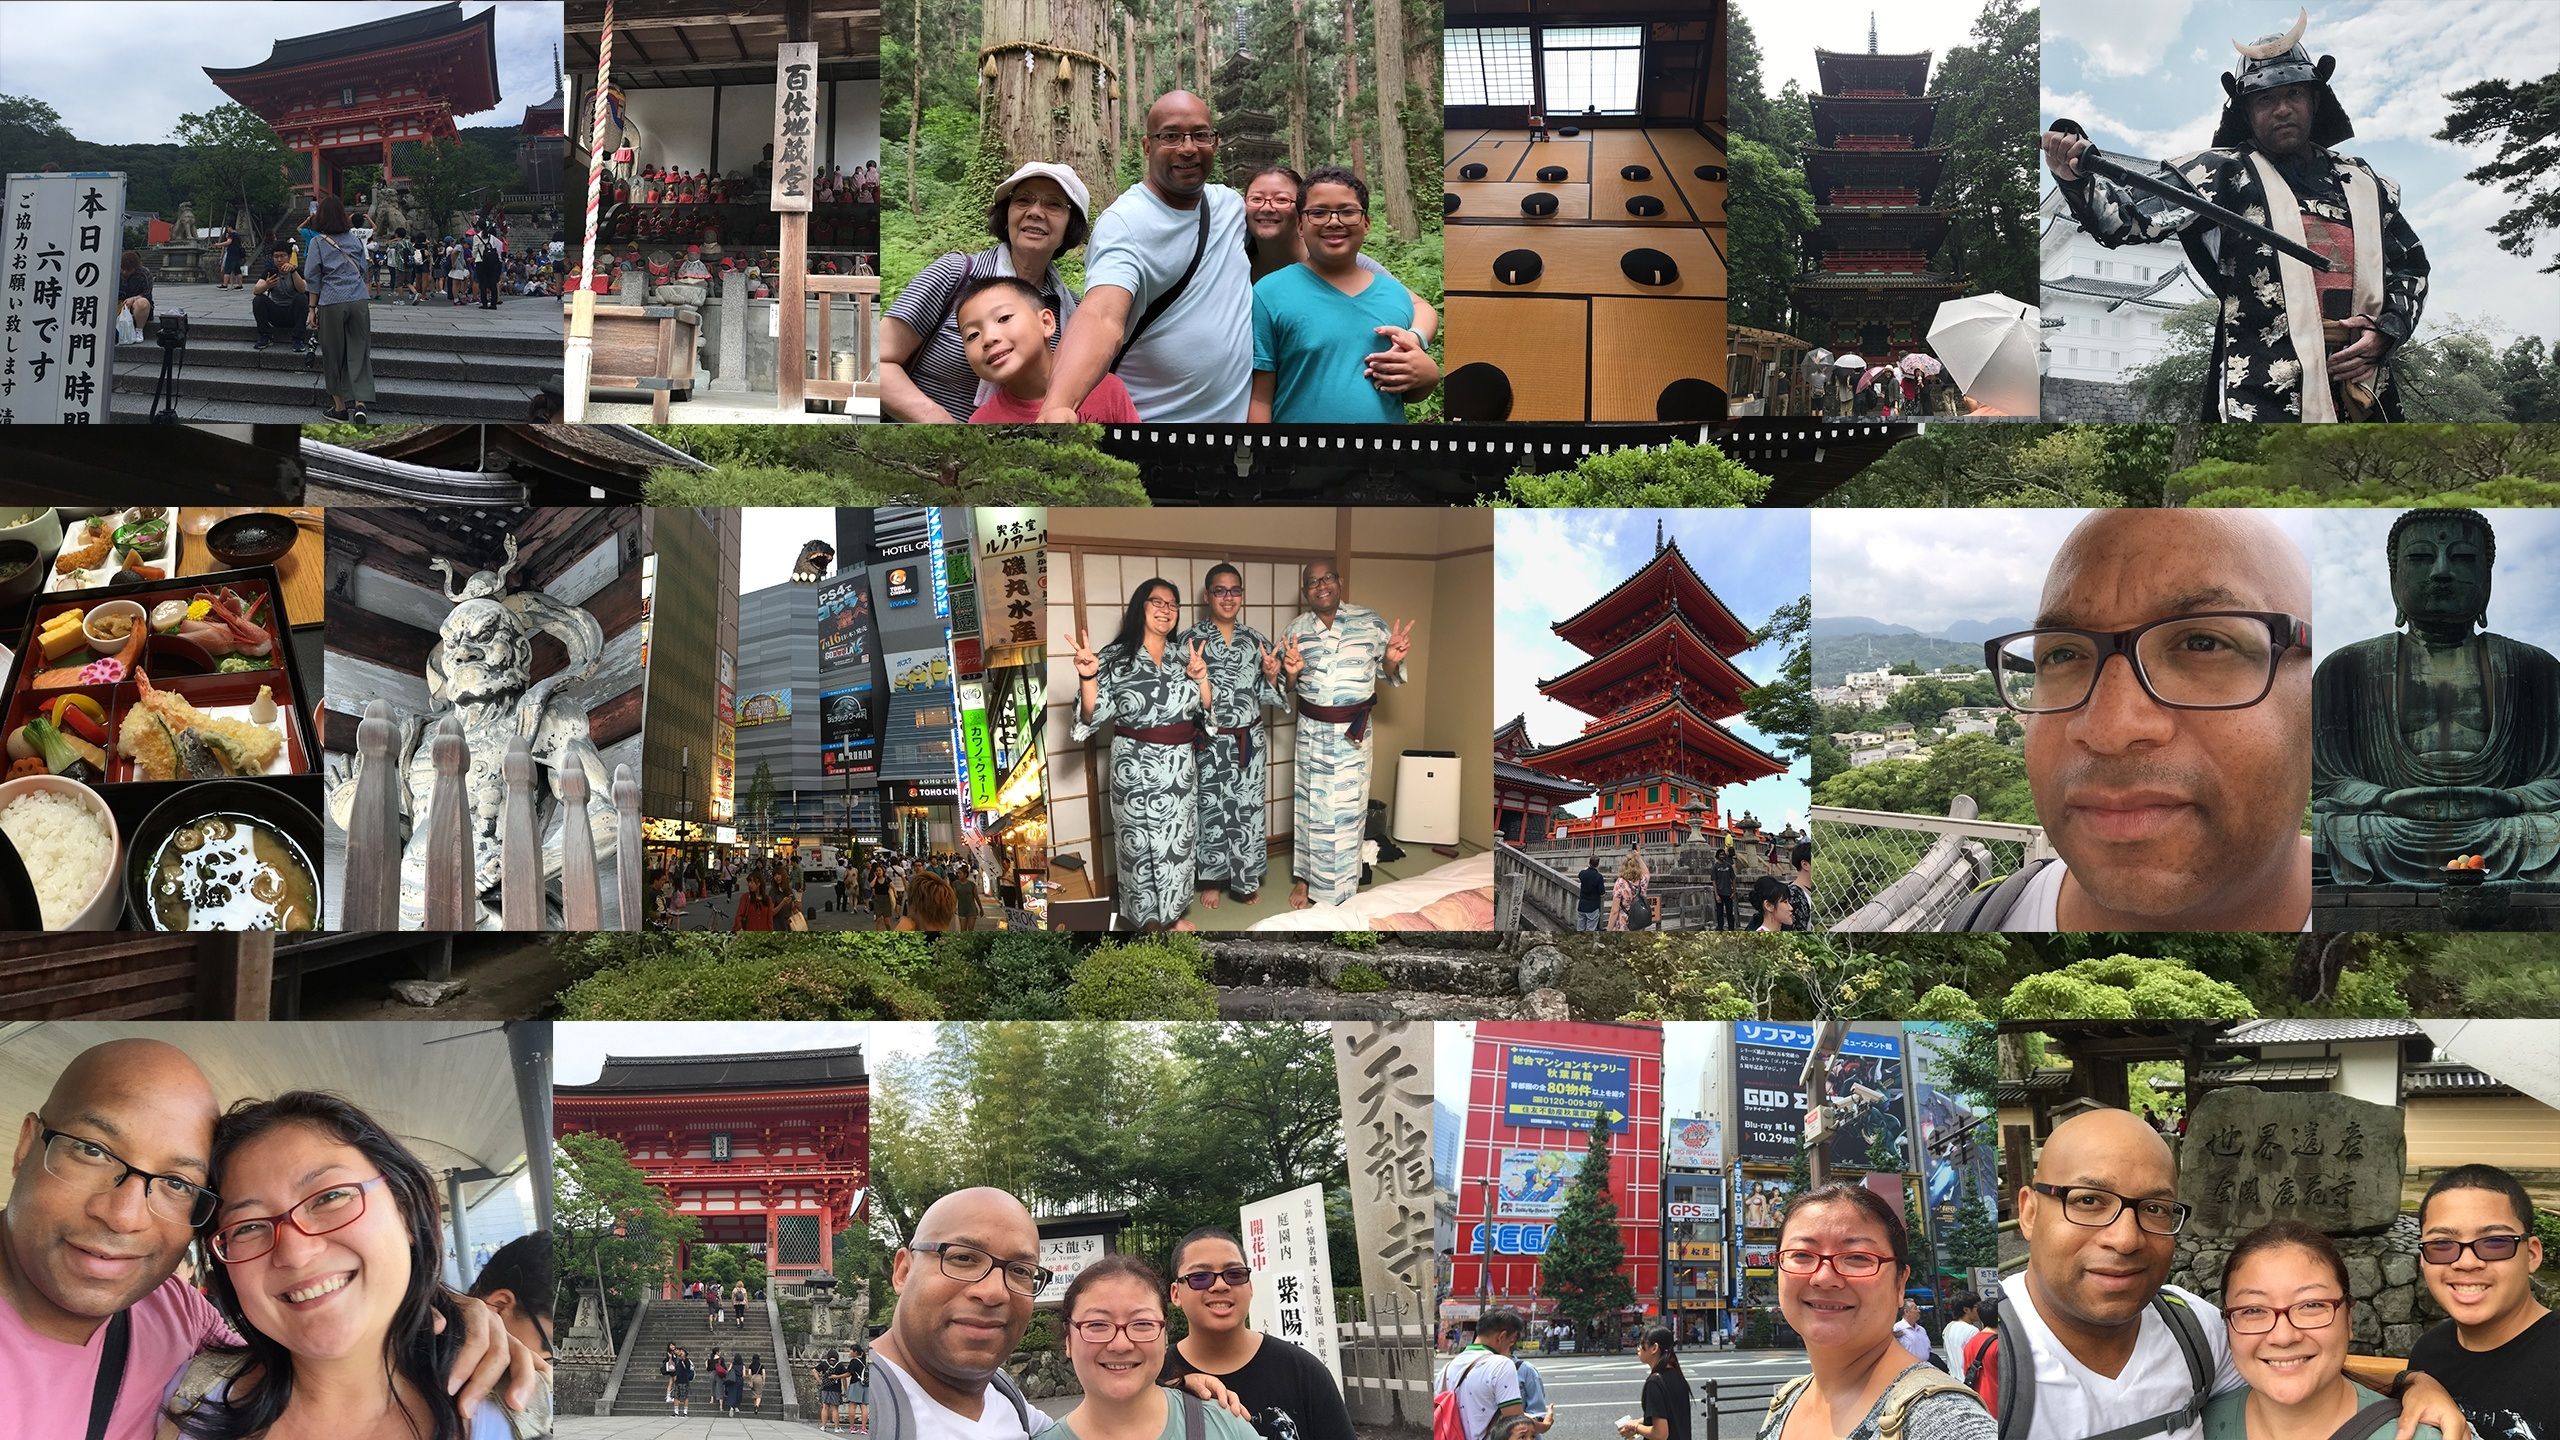 Social Media - 🇯🇵 Big Trip To Japan helps you plan an adventurous meaningful 🇯🇵 Big Trip To Japan, enjoy the journey of a lifetime, and thrive as a seasoned 🌏 world traveler.